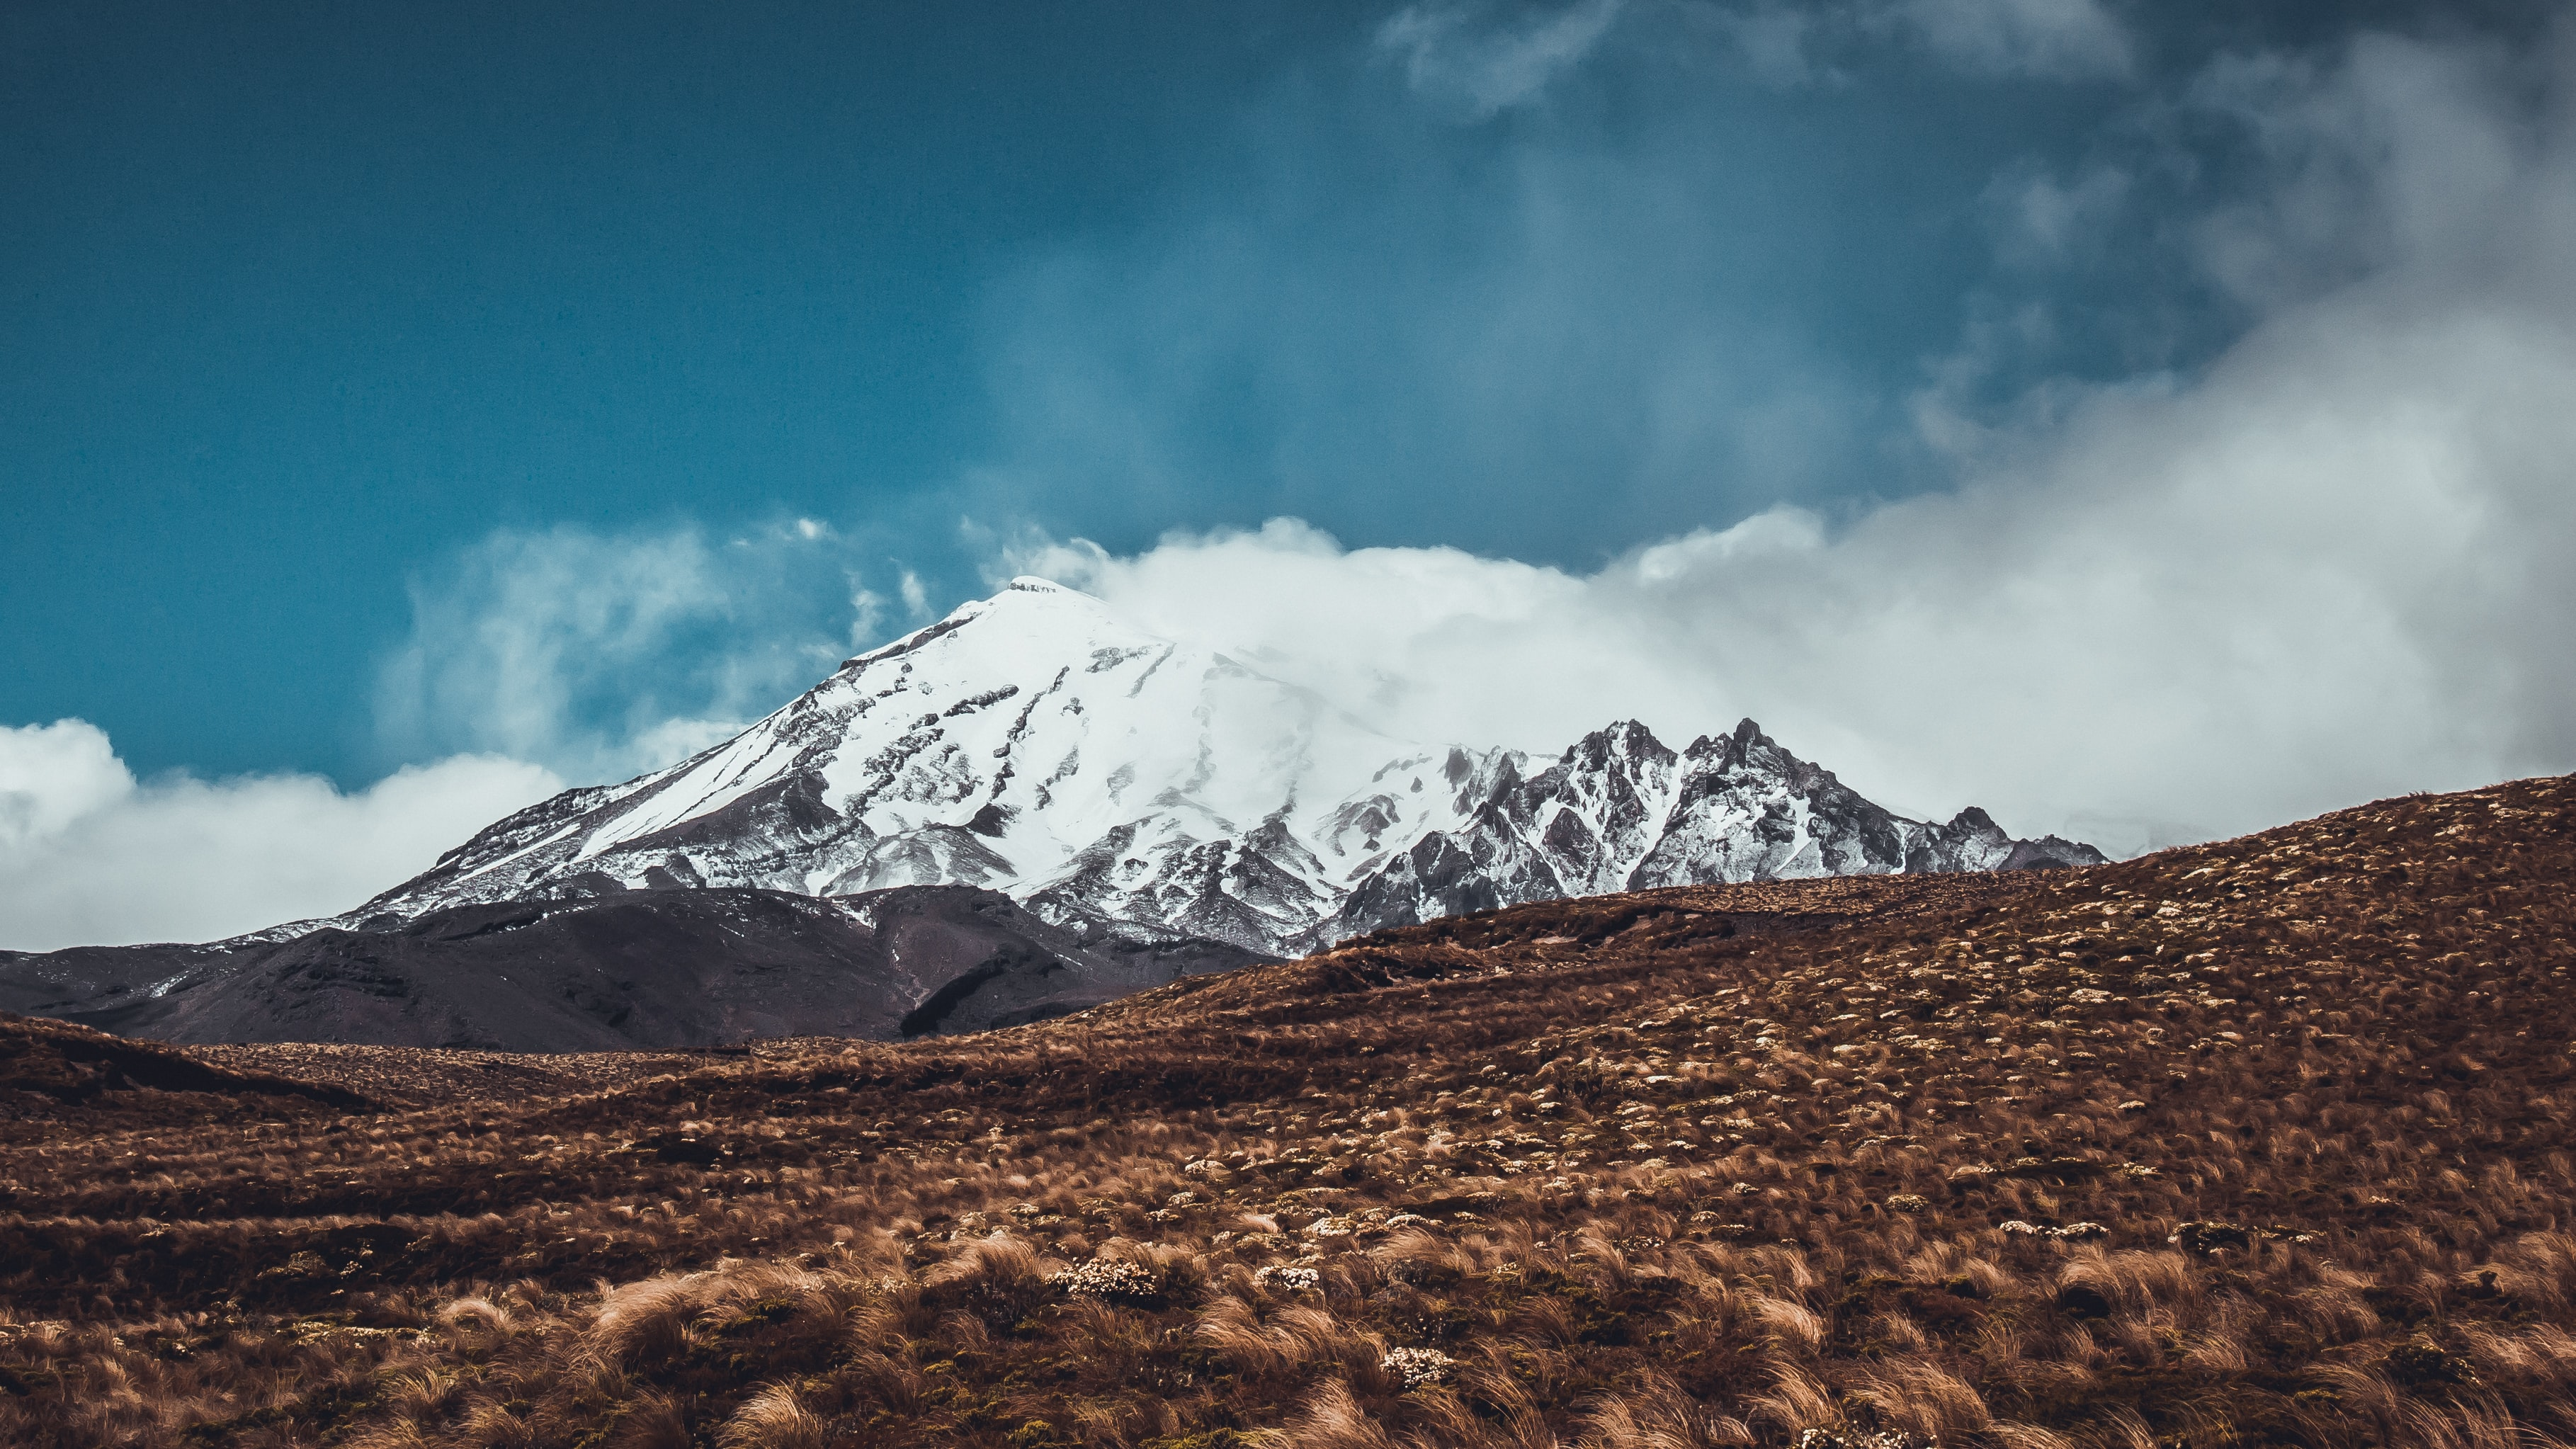 A grassy field near a snow-covered mountain in Tongariro National Park